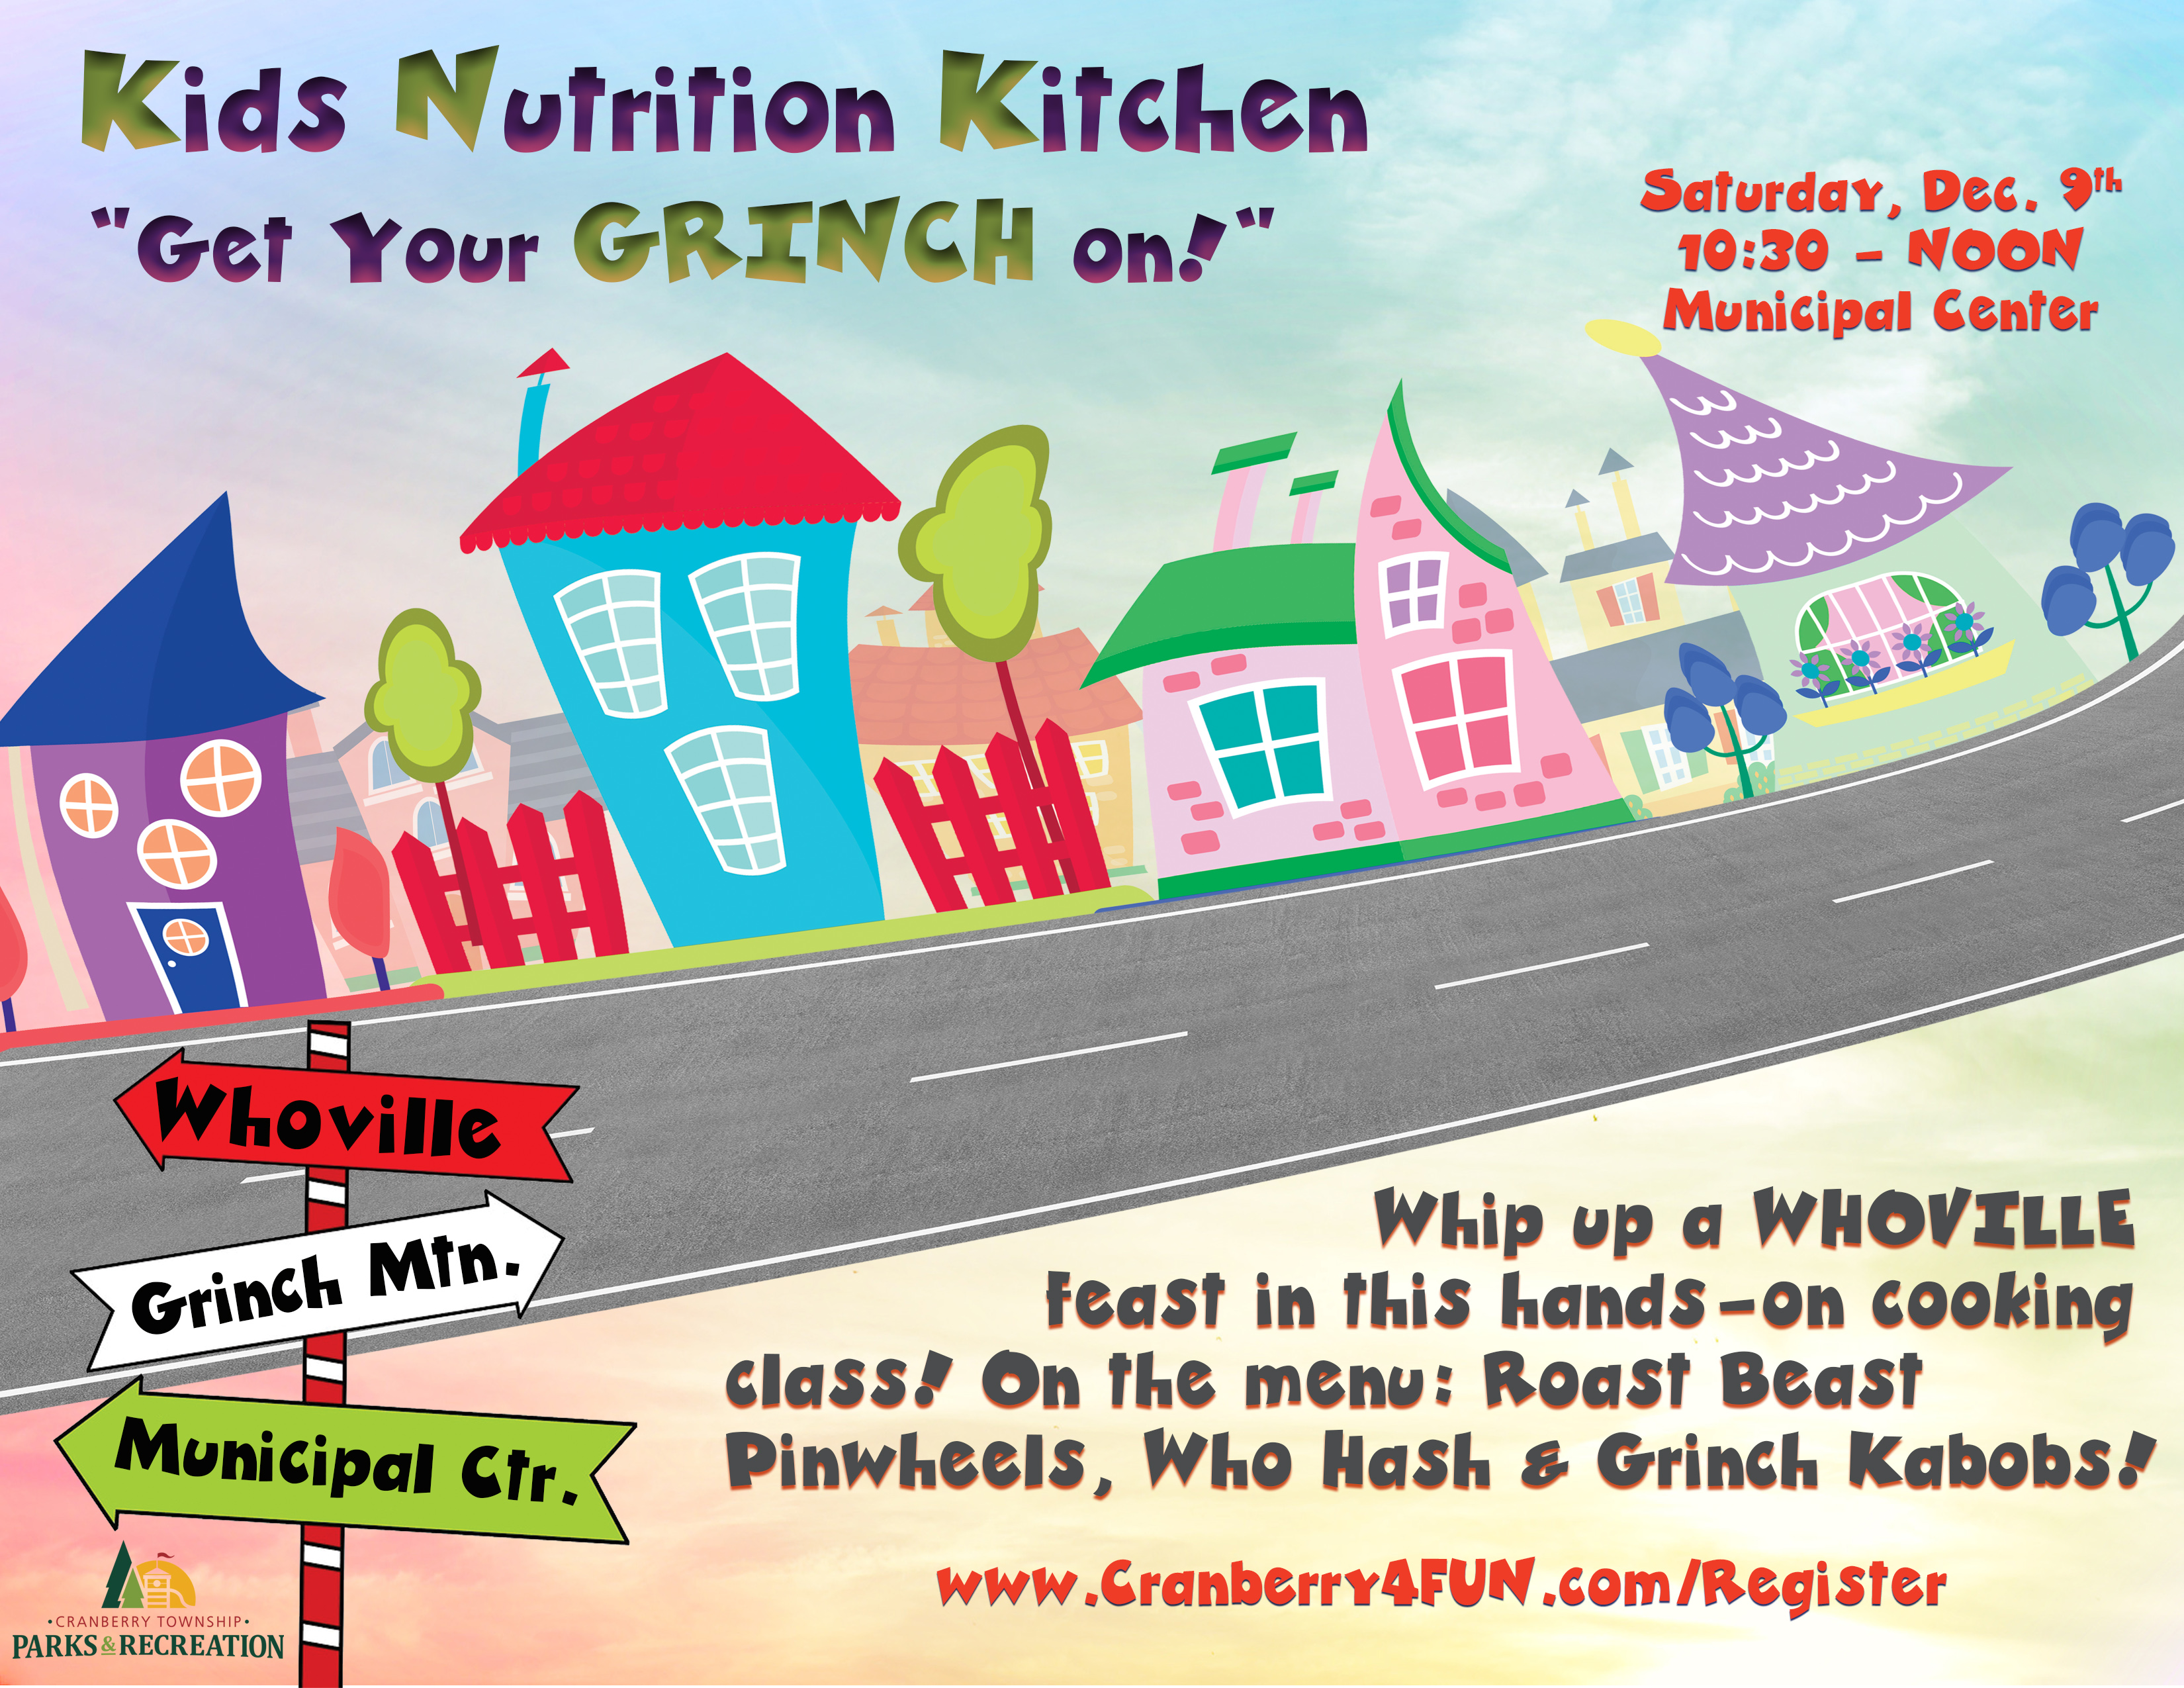 Grinch 1/2 page flyer